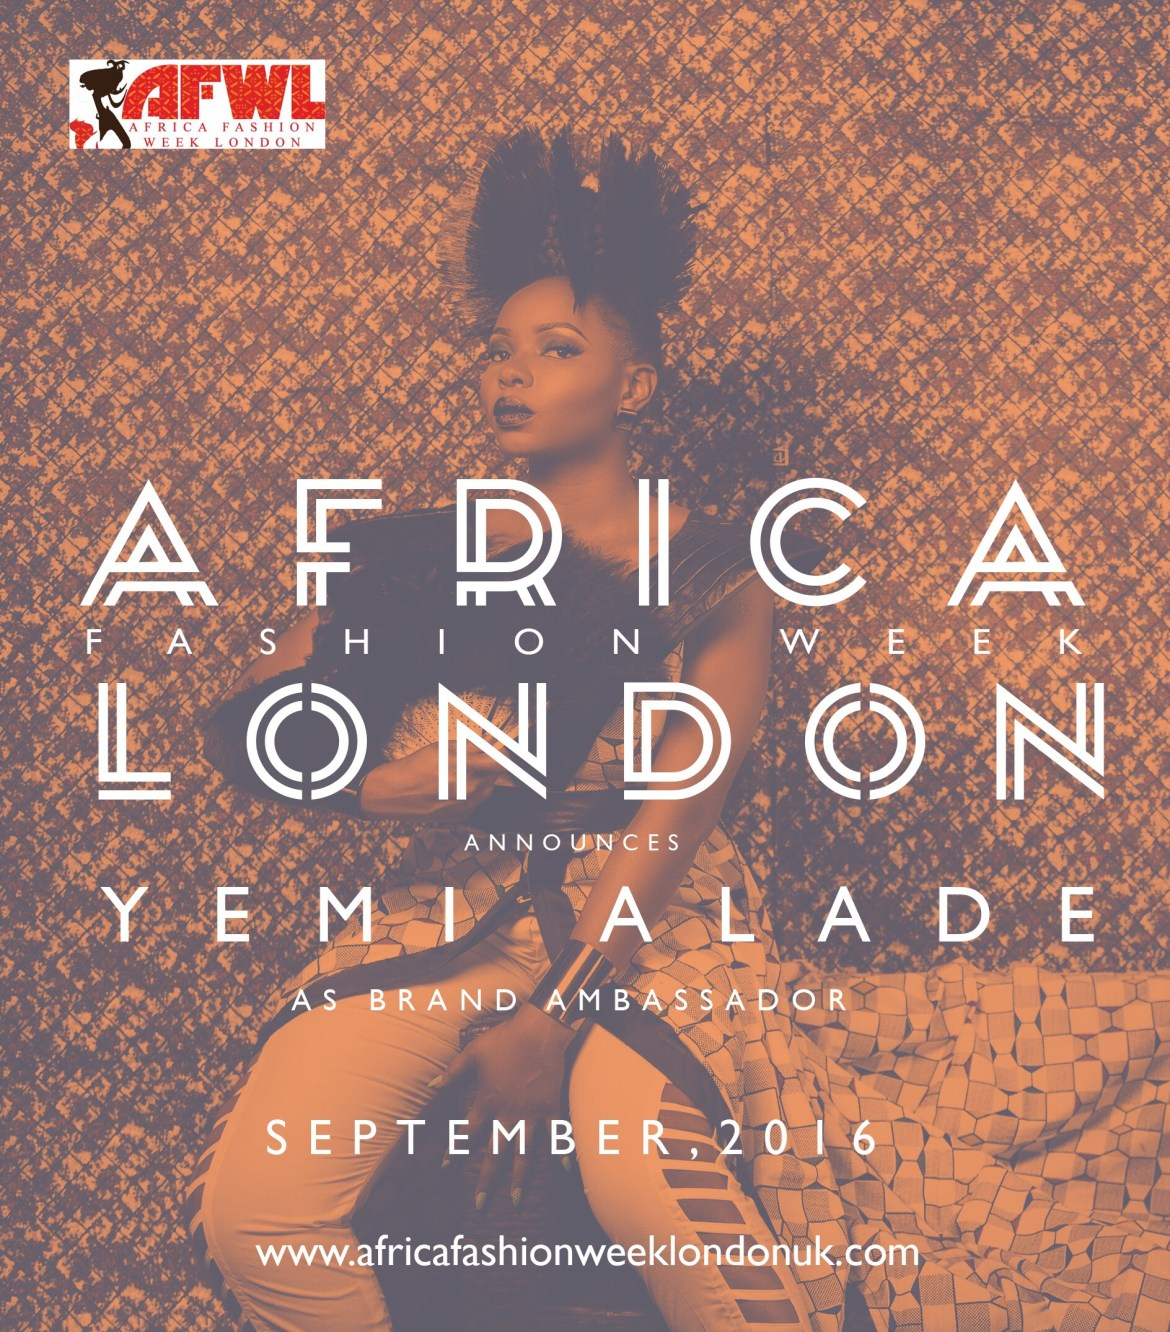 Photo Credit: AFWL/AFWN 2016 Yemi Alade